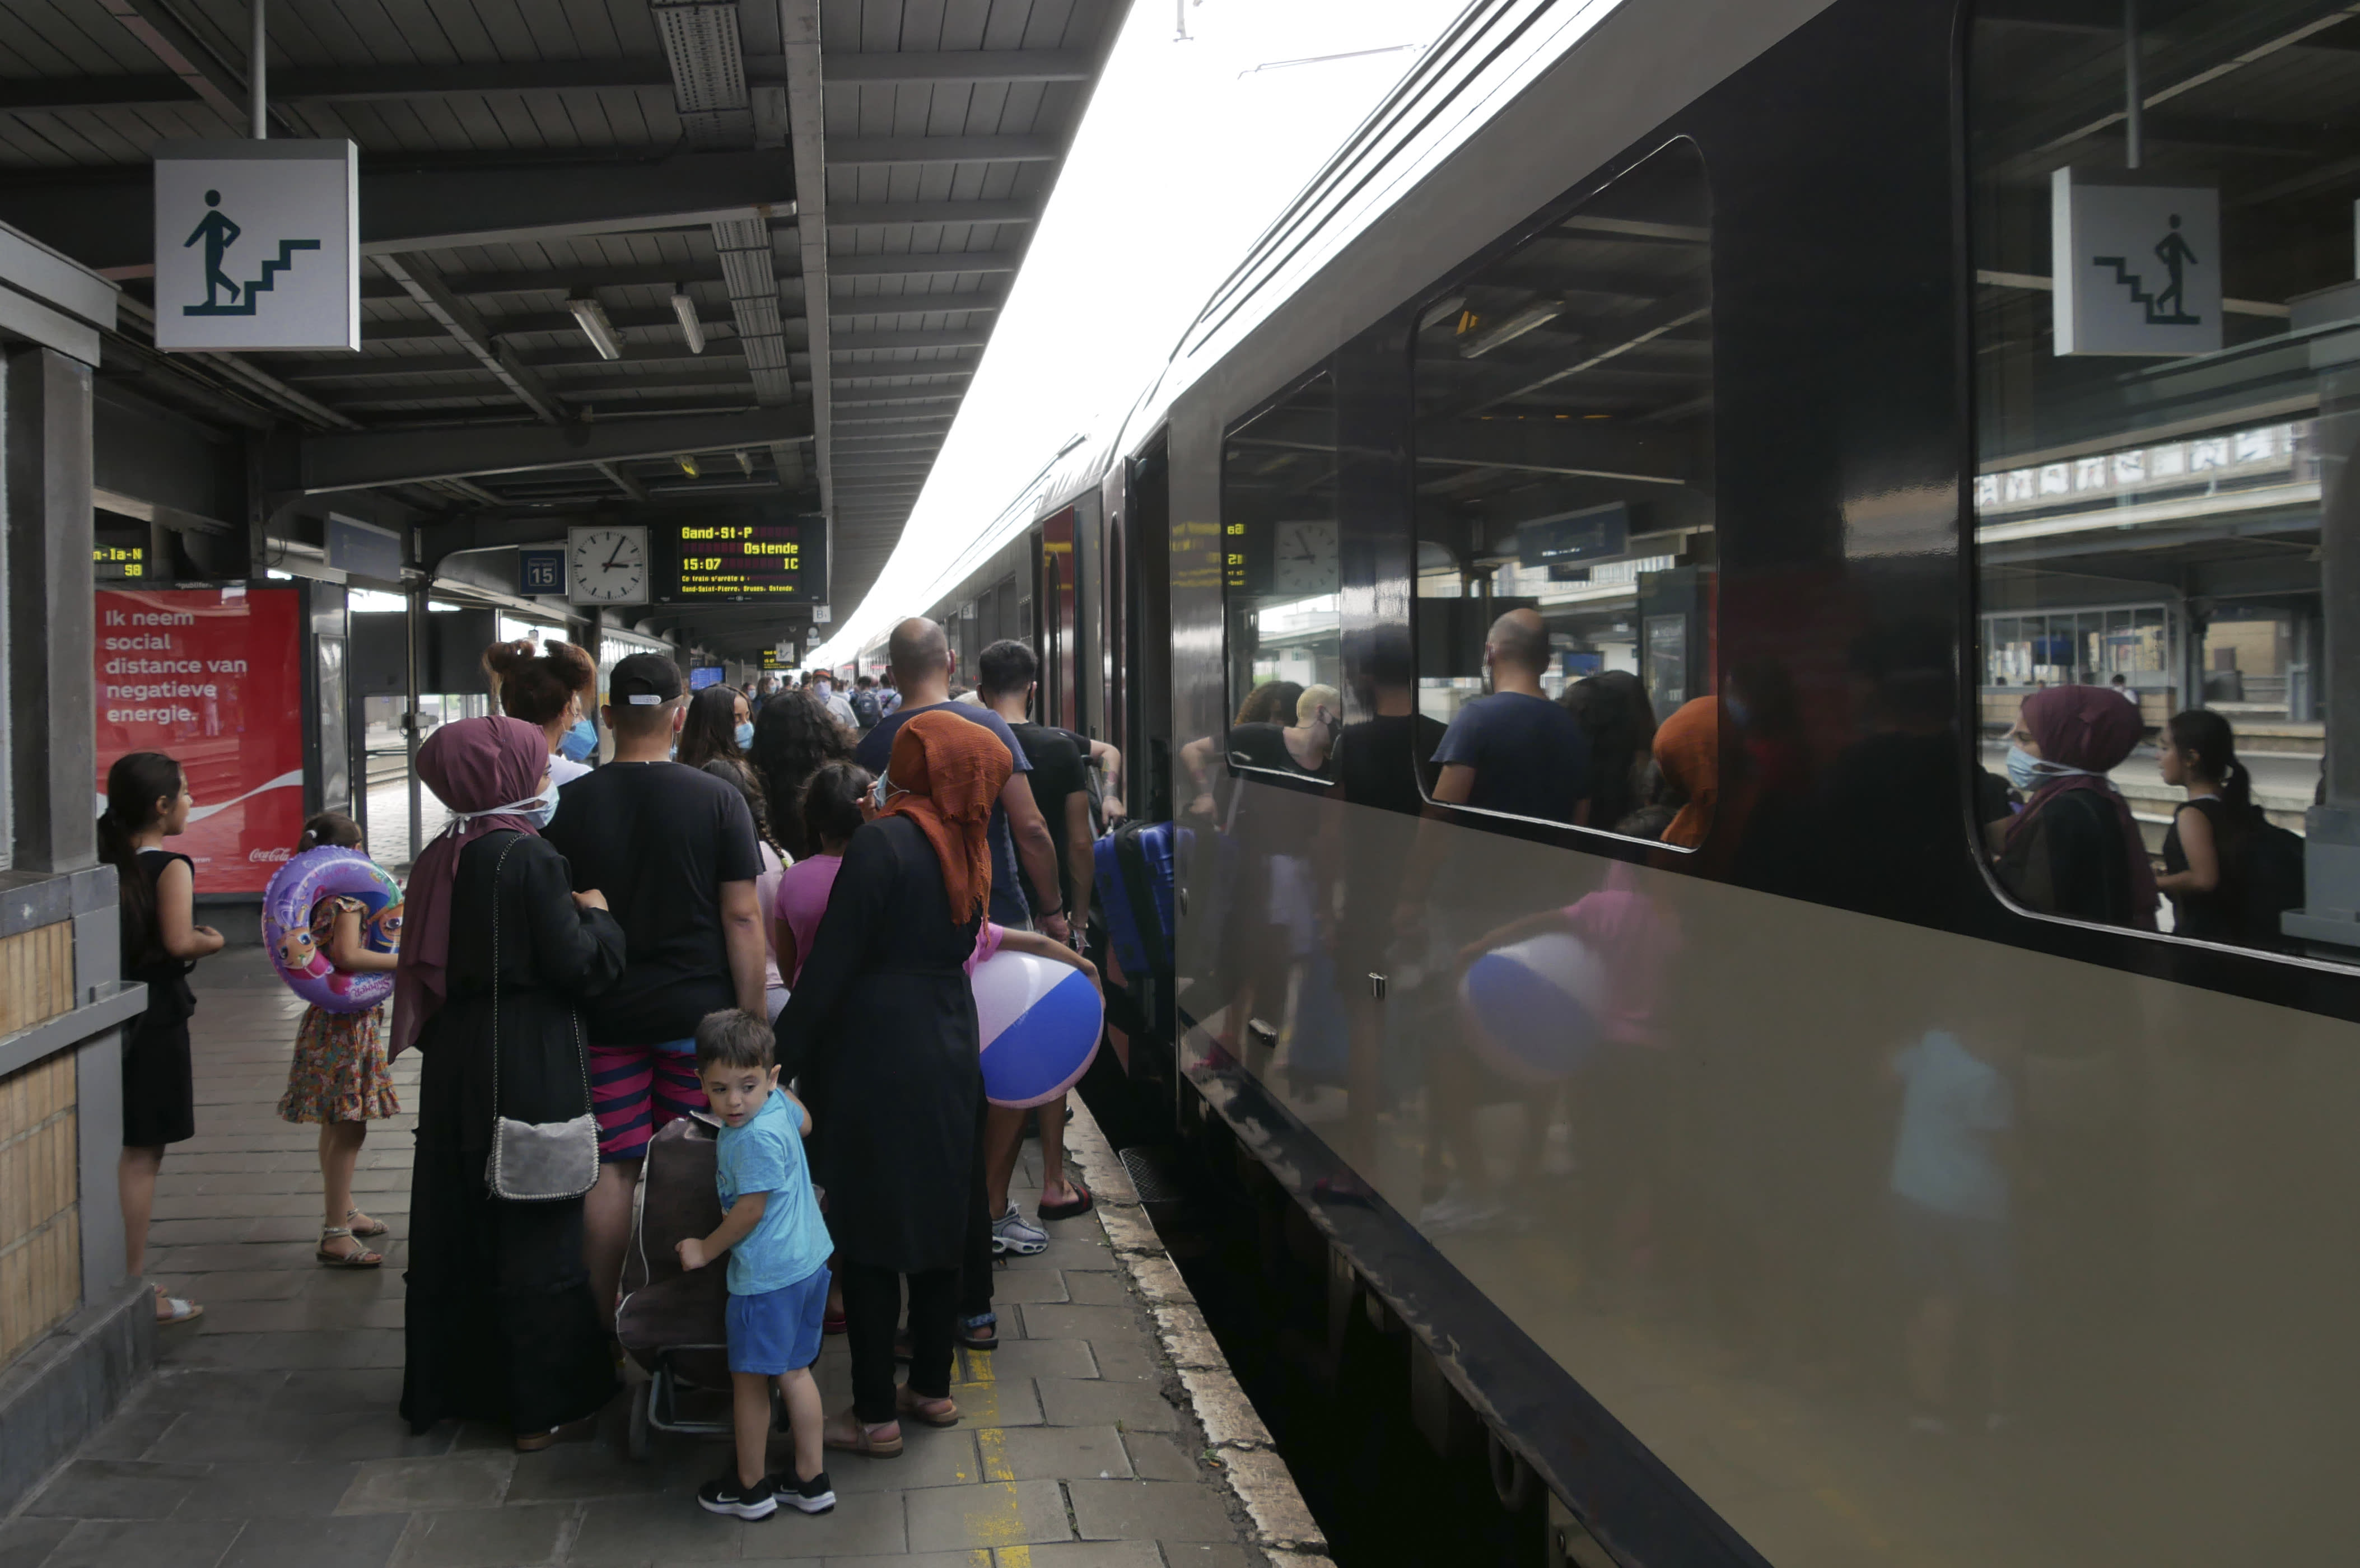 People wait to board a train in Brussels to the Belgian coastal resort of Blankenberge, Belgium on Tuesday, Aug. 11, 2020. The coast is just a 90-minute train ride from the capital Brussels, and other places where people who seldom have cars could get away from it all and cool off are poorly served by public transport. Many youths were boarding trains in Brussels Tuesday, but Knokke-Heist station was almost empty. (AP Photo/Sylvain Plazy)